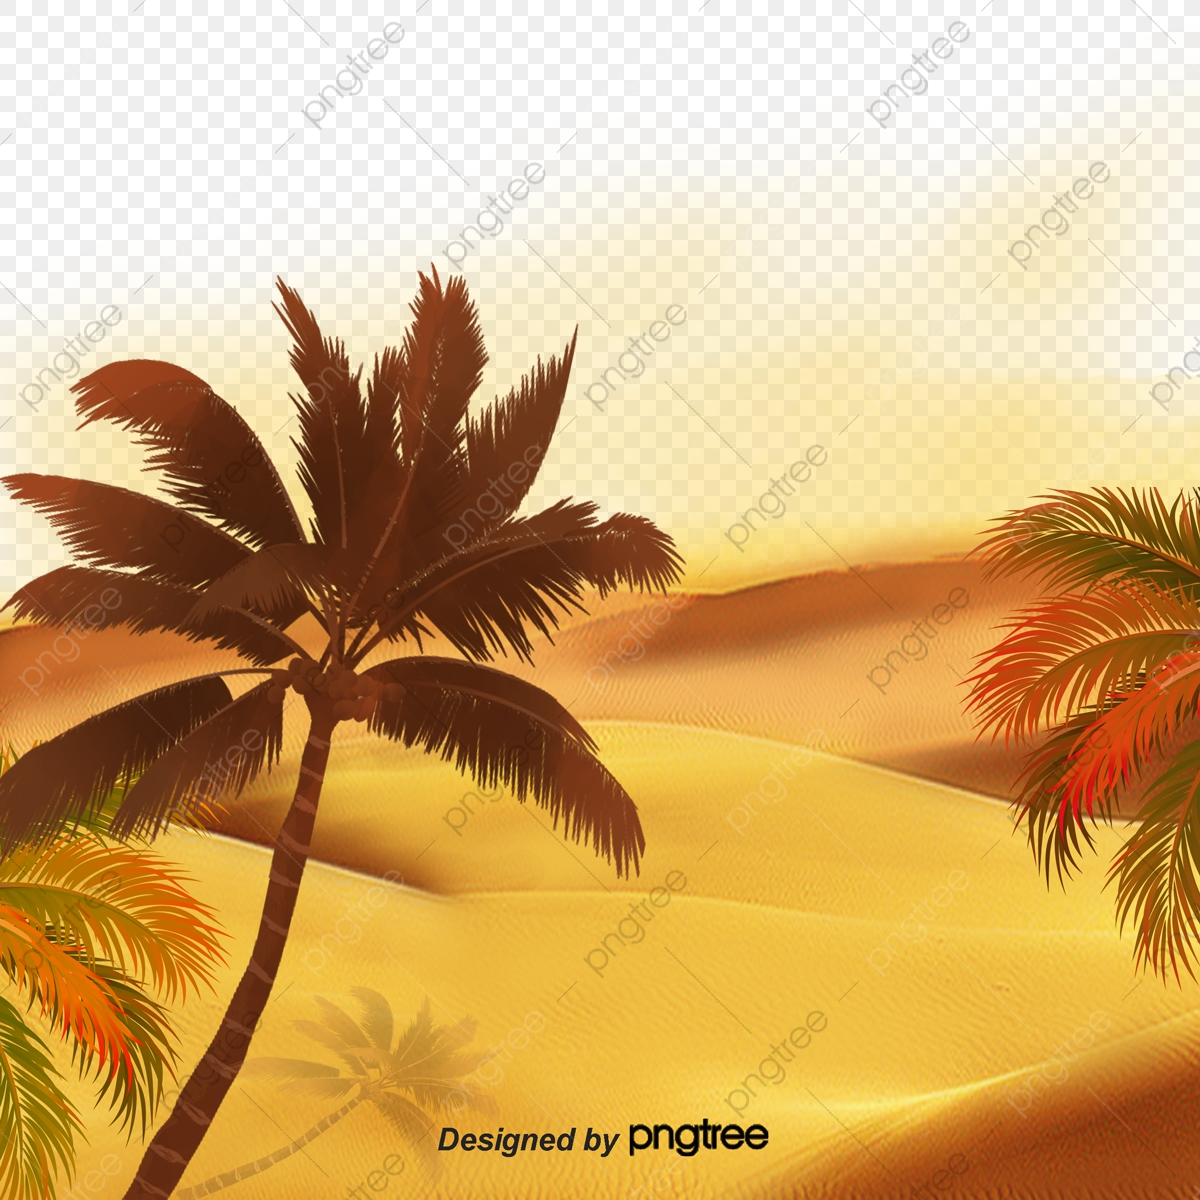 Vector Sunset Beach, Sunset Vector, Beach Vector, Sunset Clipart PNG.